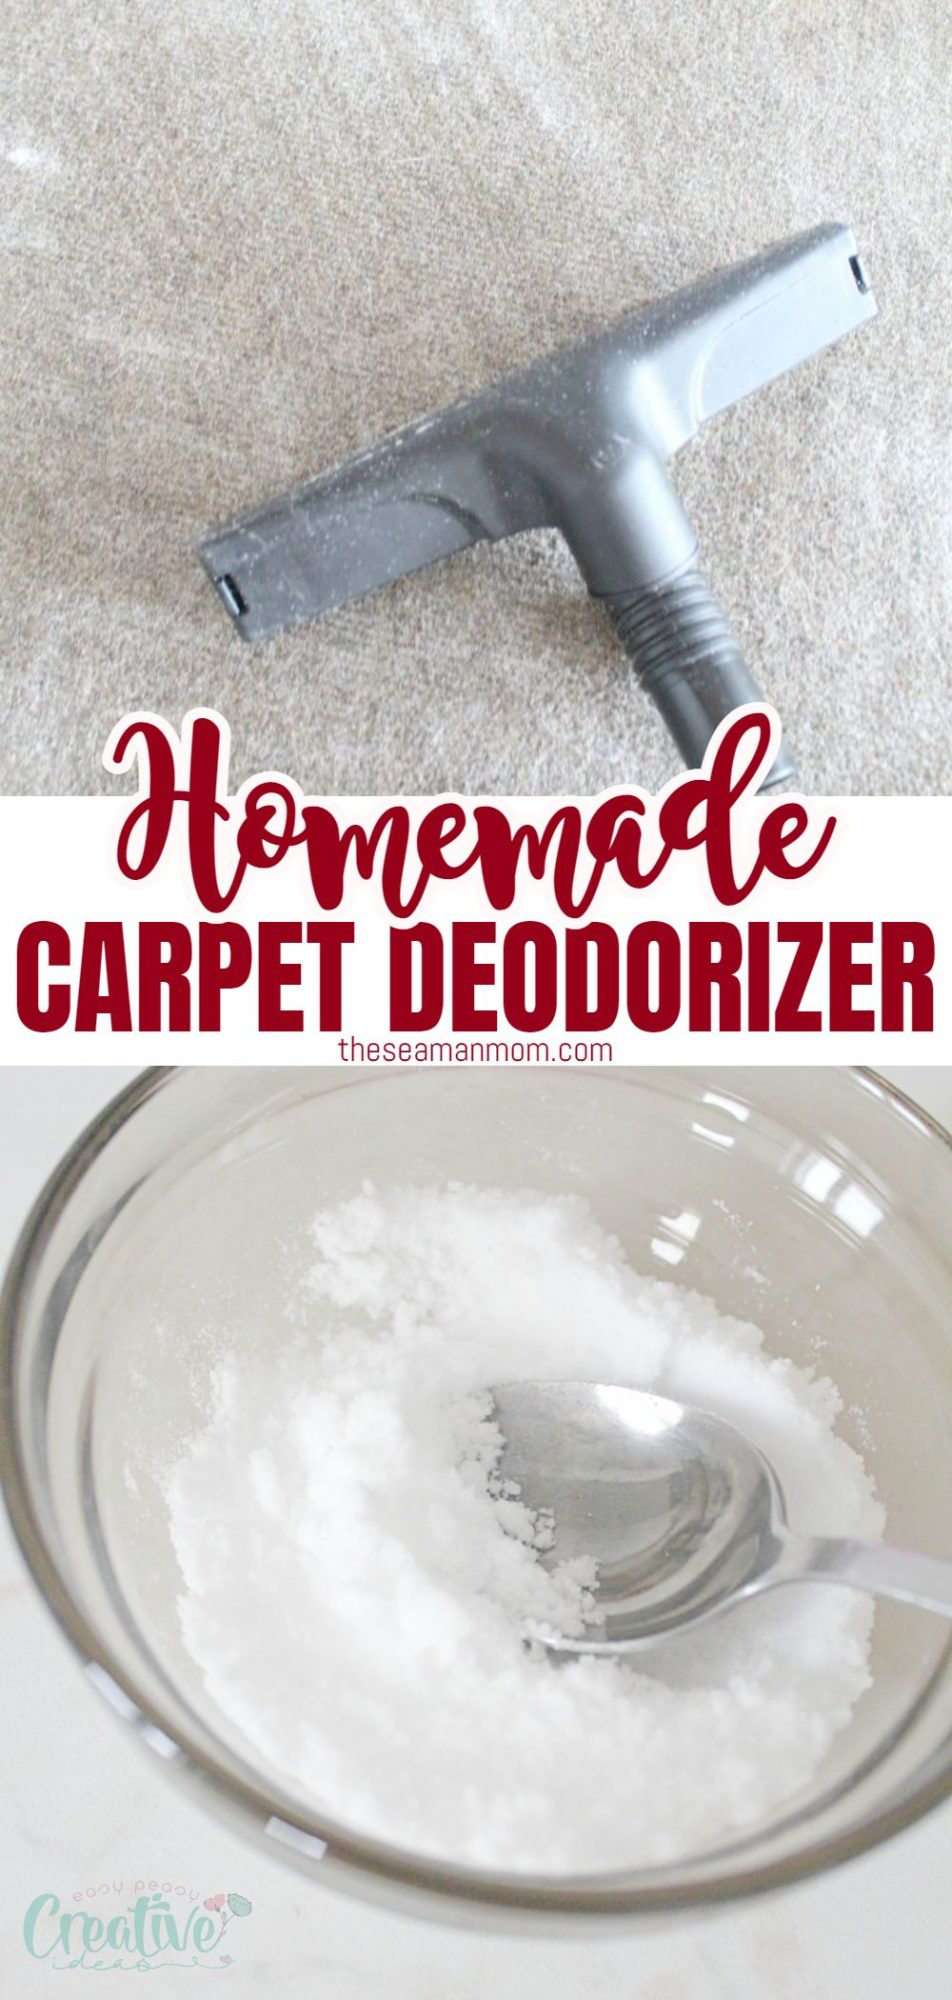 DIY Carpet deodorizer in a bowl and on the carpet